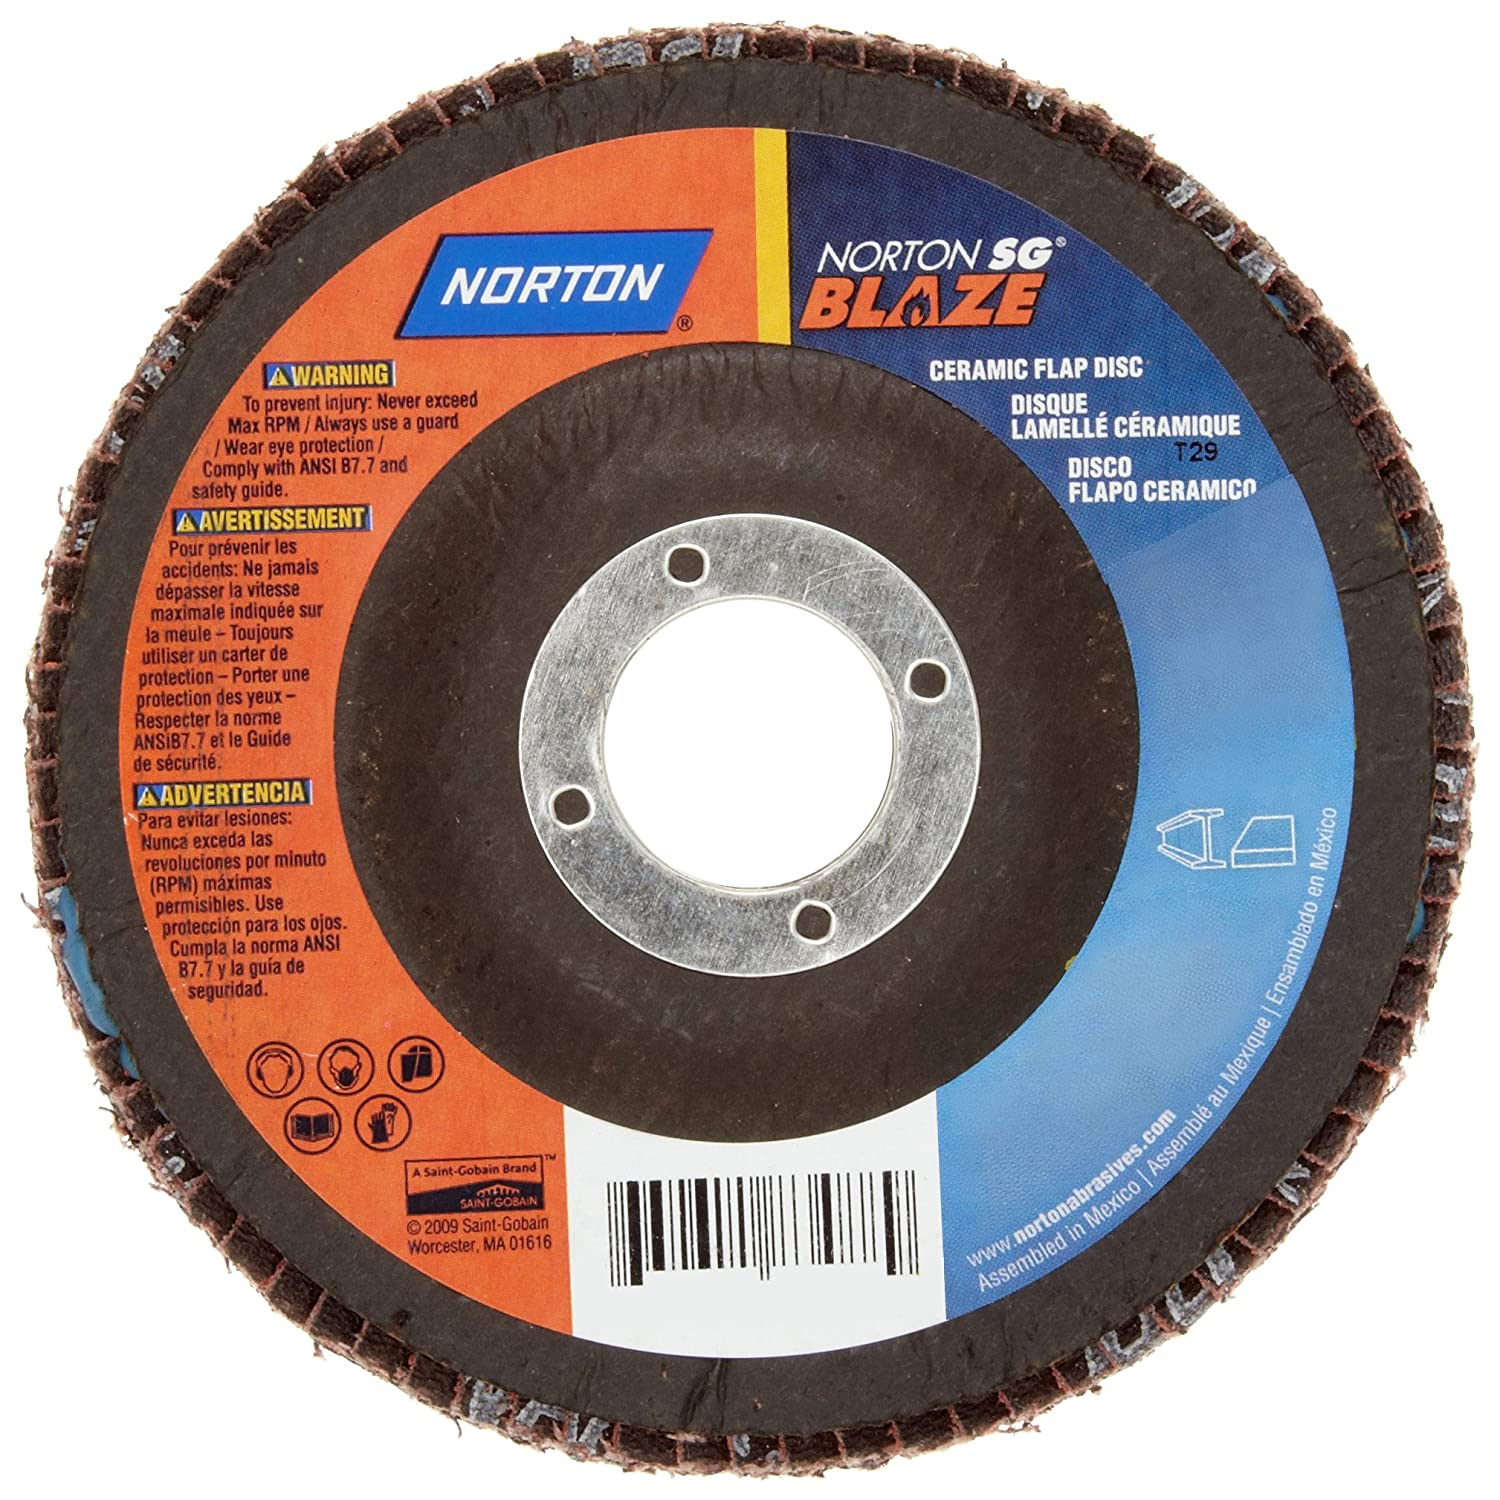 Ceramic Aluminum Oxide Grit 36 Box of 25 Fiber Backing 4-1//2 Diameter Norton SG Blaze F980 Abrasive Disc 7//8 Arbor